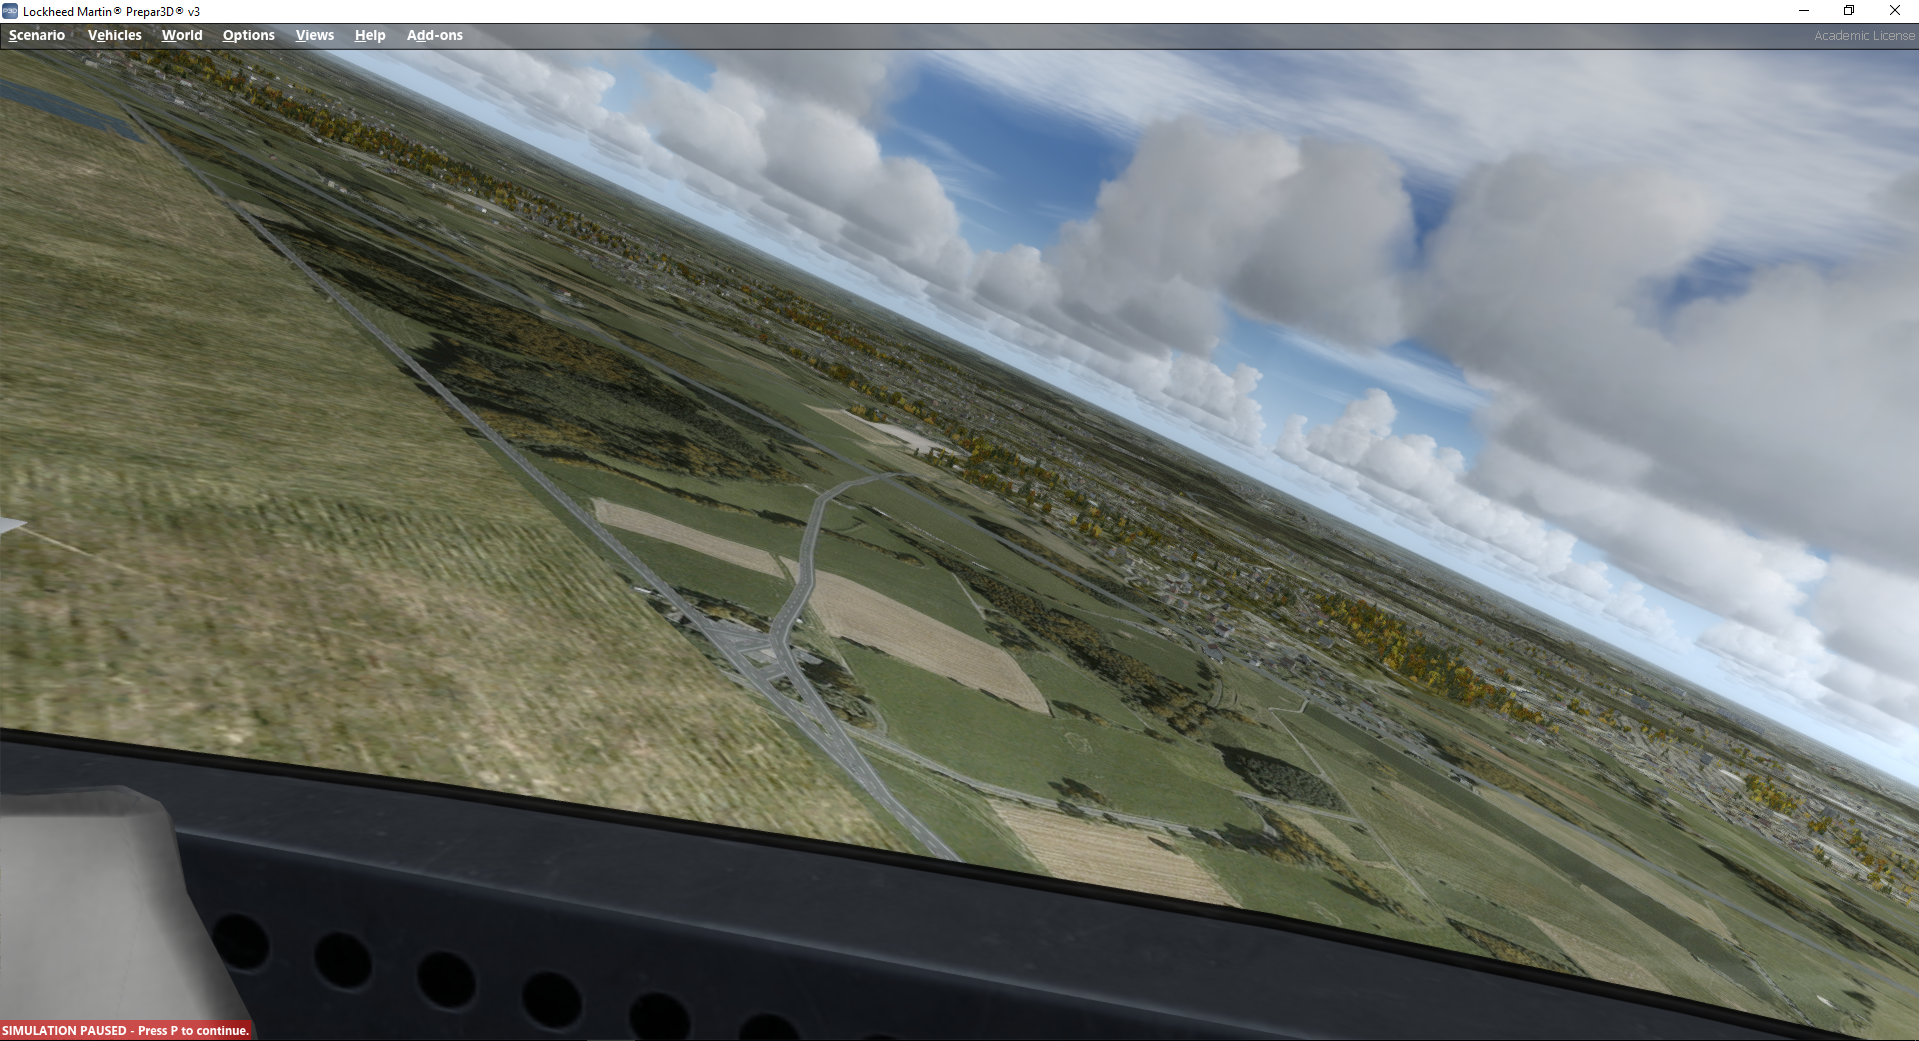 P3D V3 Blurry textures  - Hardware and OS Discussions